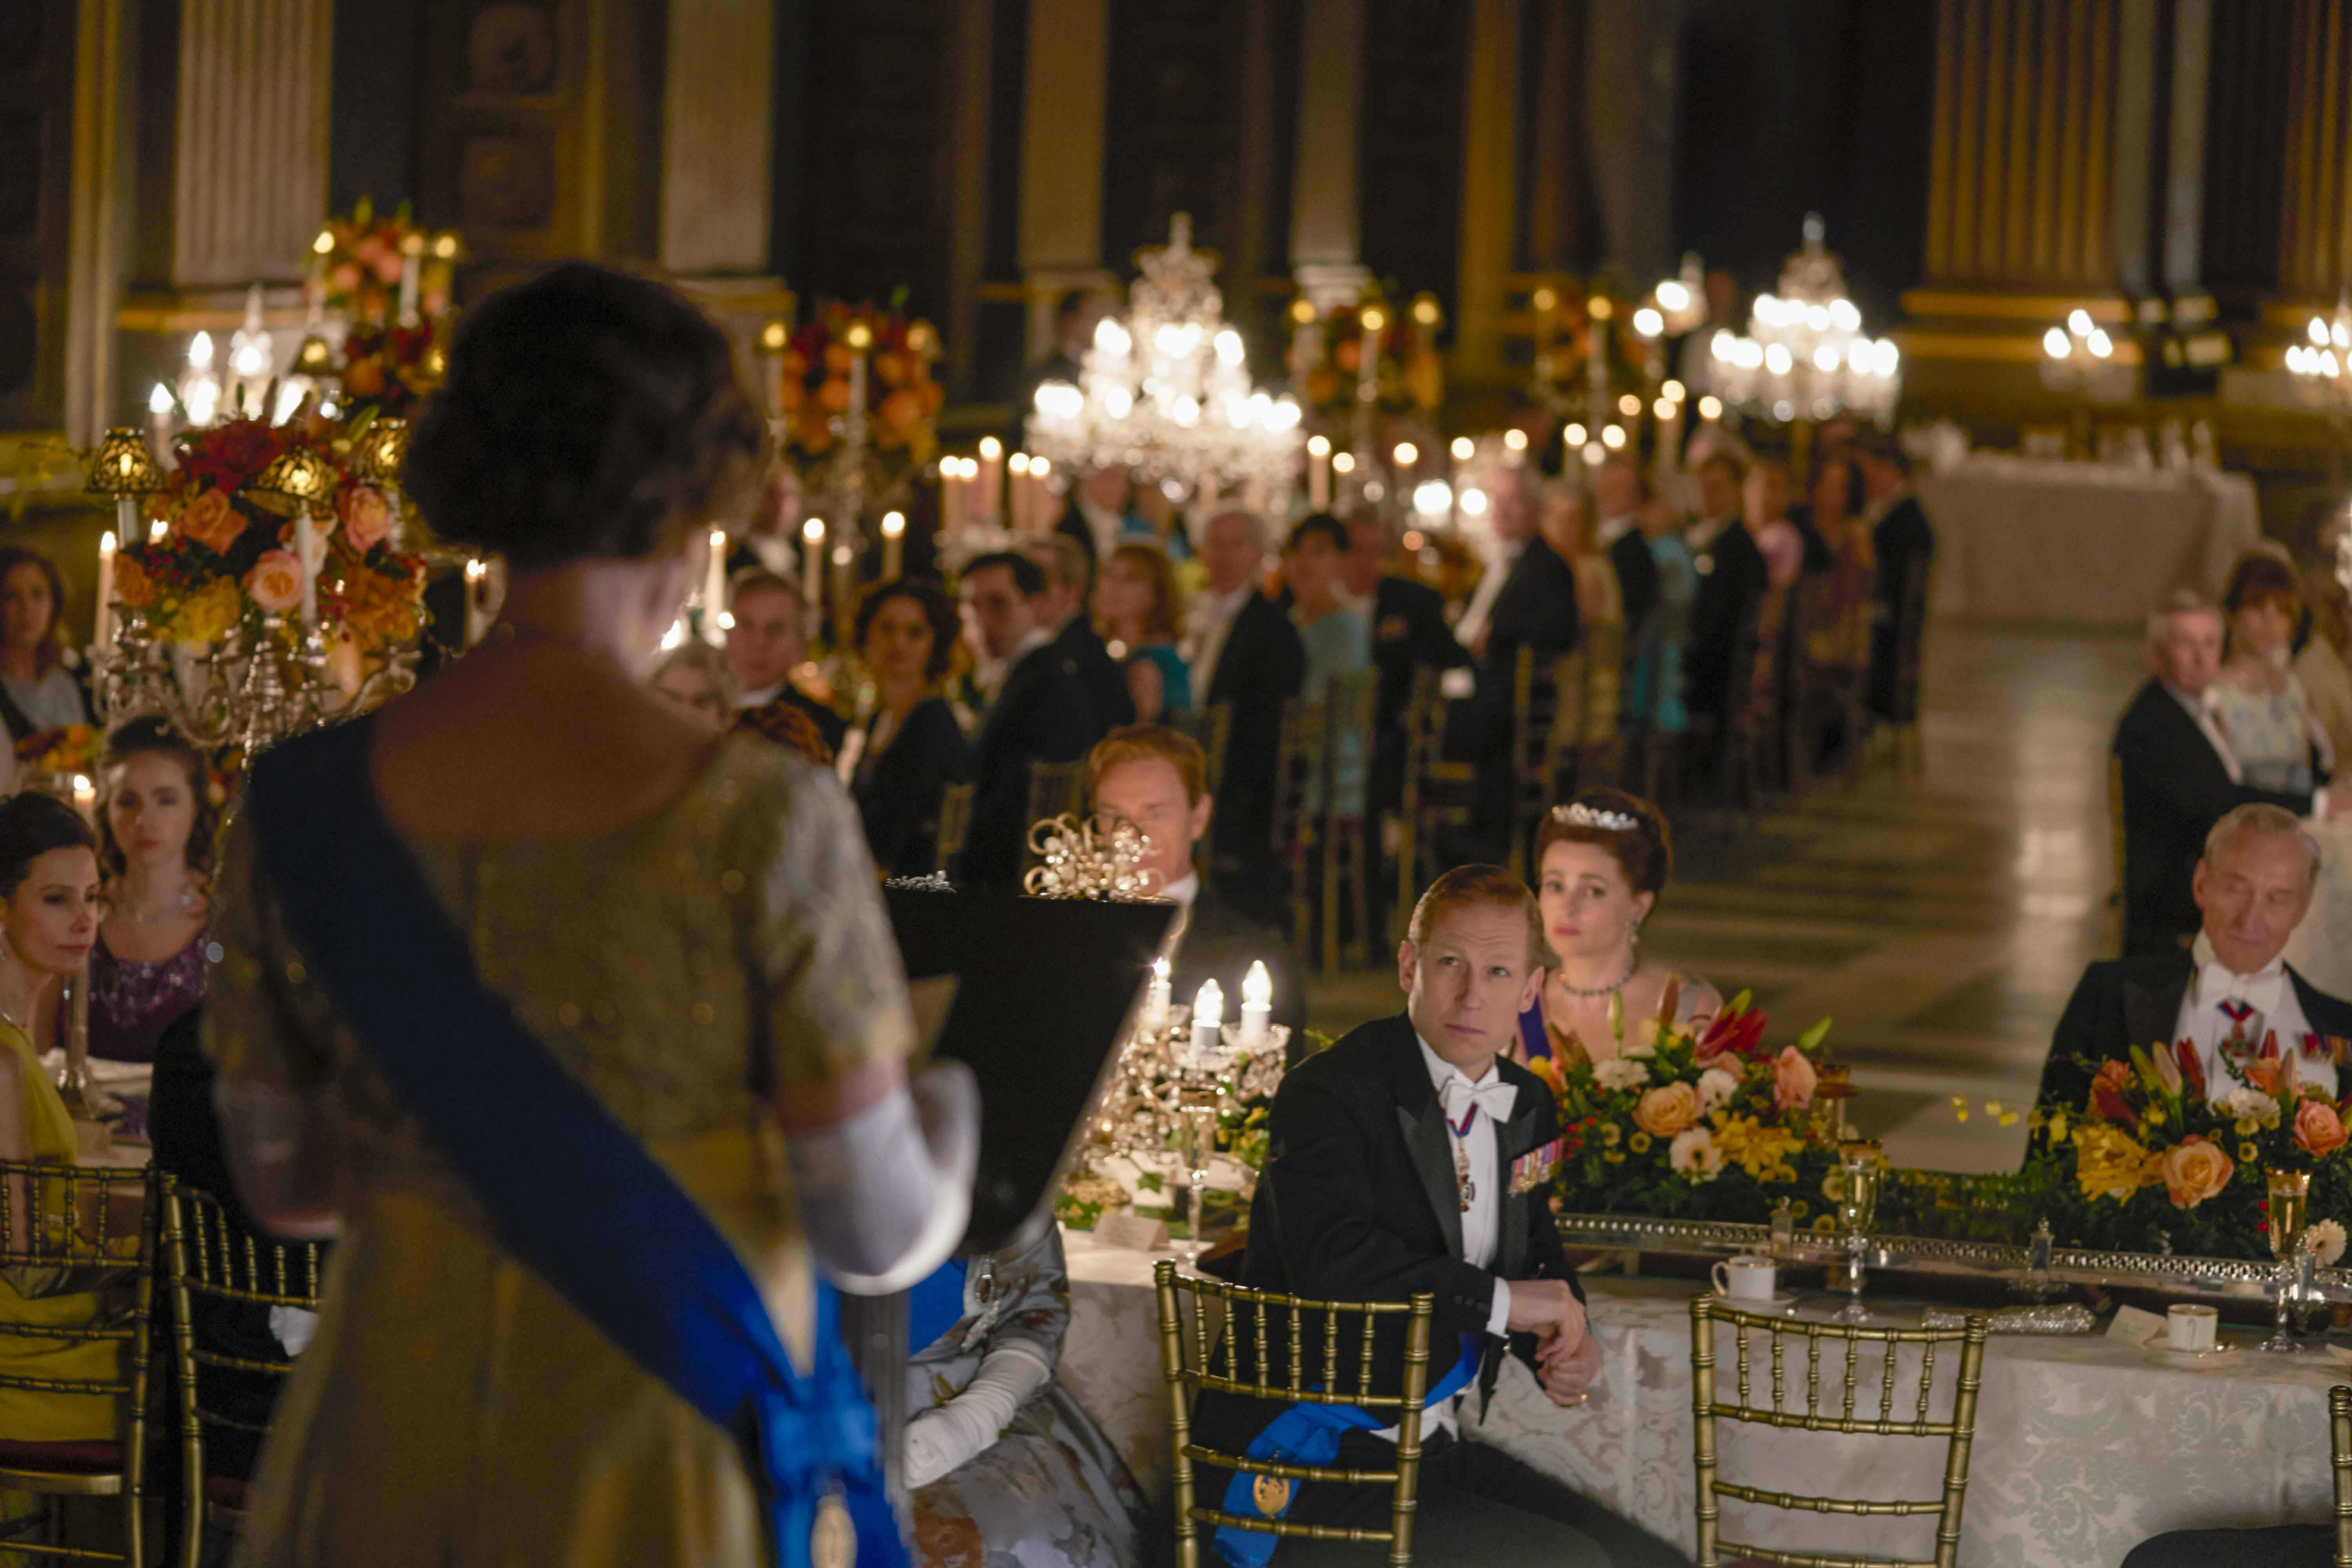 The Crown filmed in Burghley House's Heaven Room.